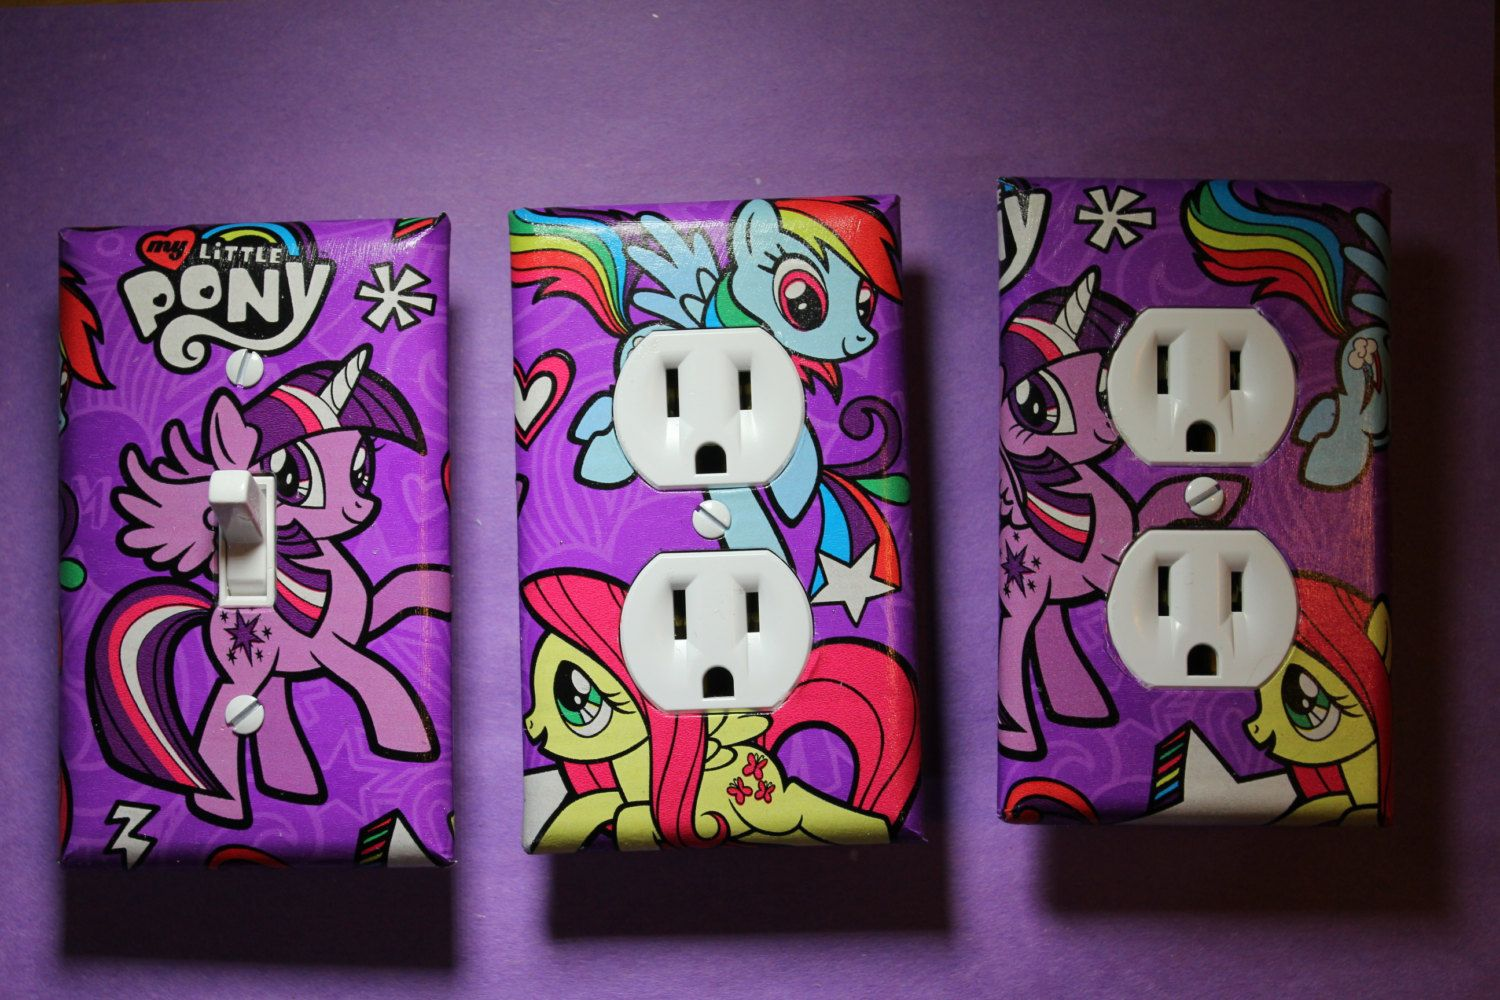 My Little Pony Light Switch Socket Cover Set S Childs Kids Room Home Decor Twilight Sparkle Fluttershy Rainbow Dash Bronie Brony By Comicrecycled On